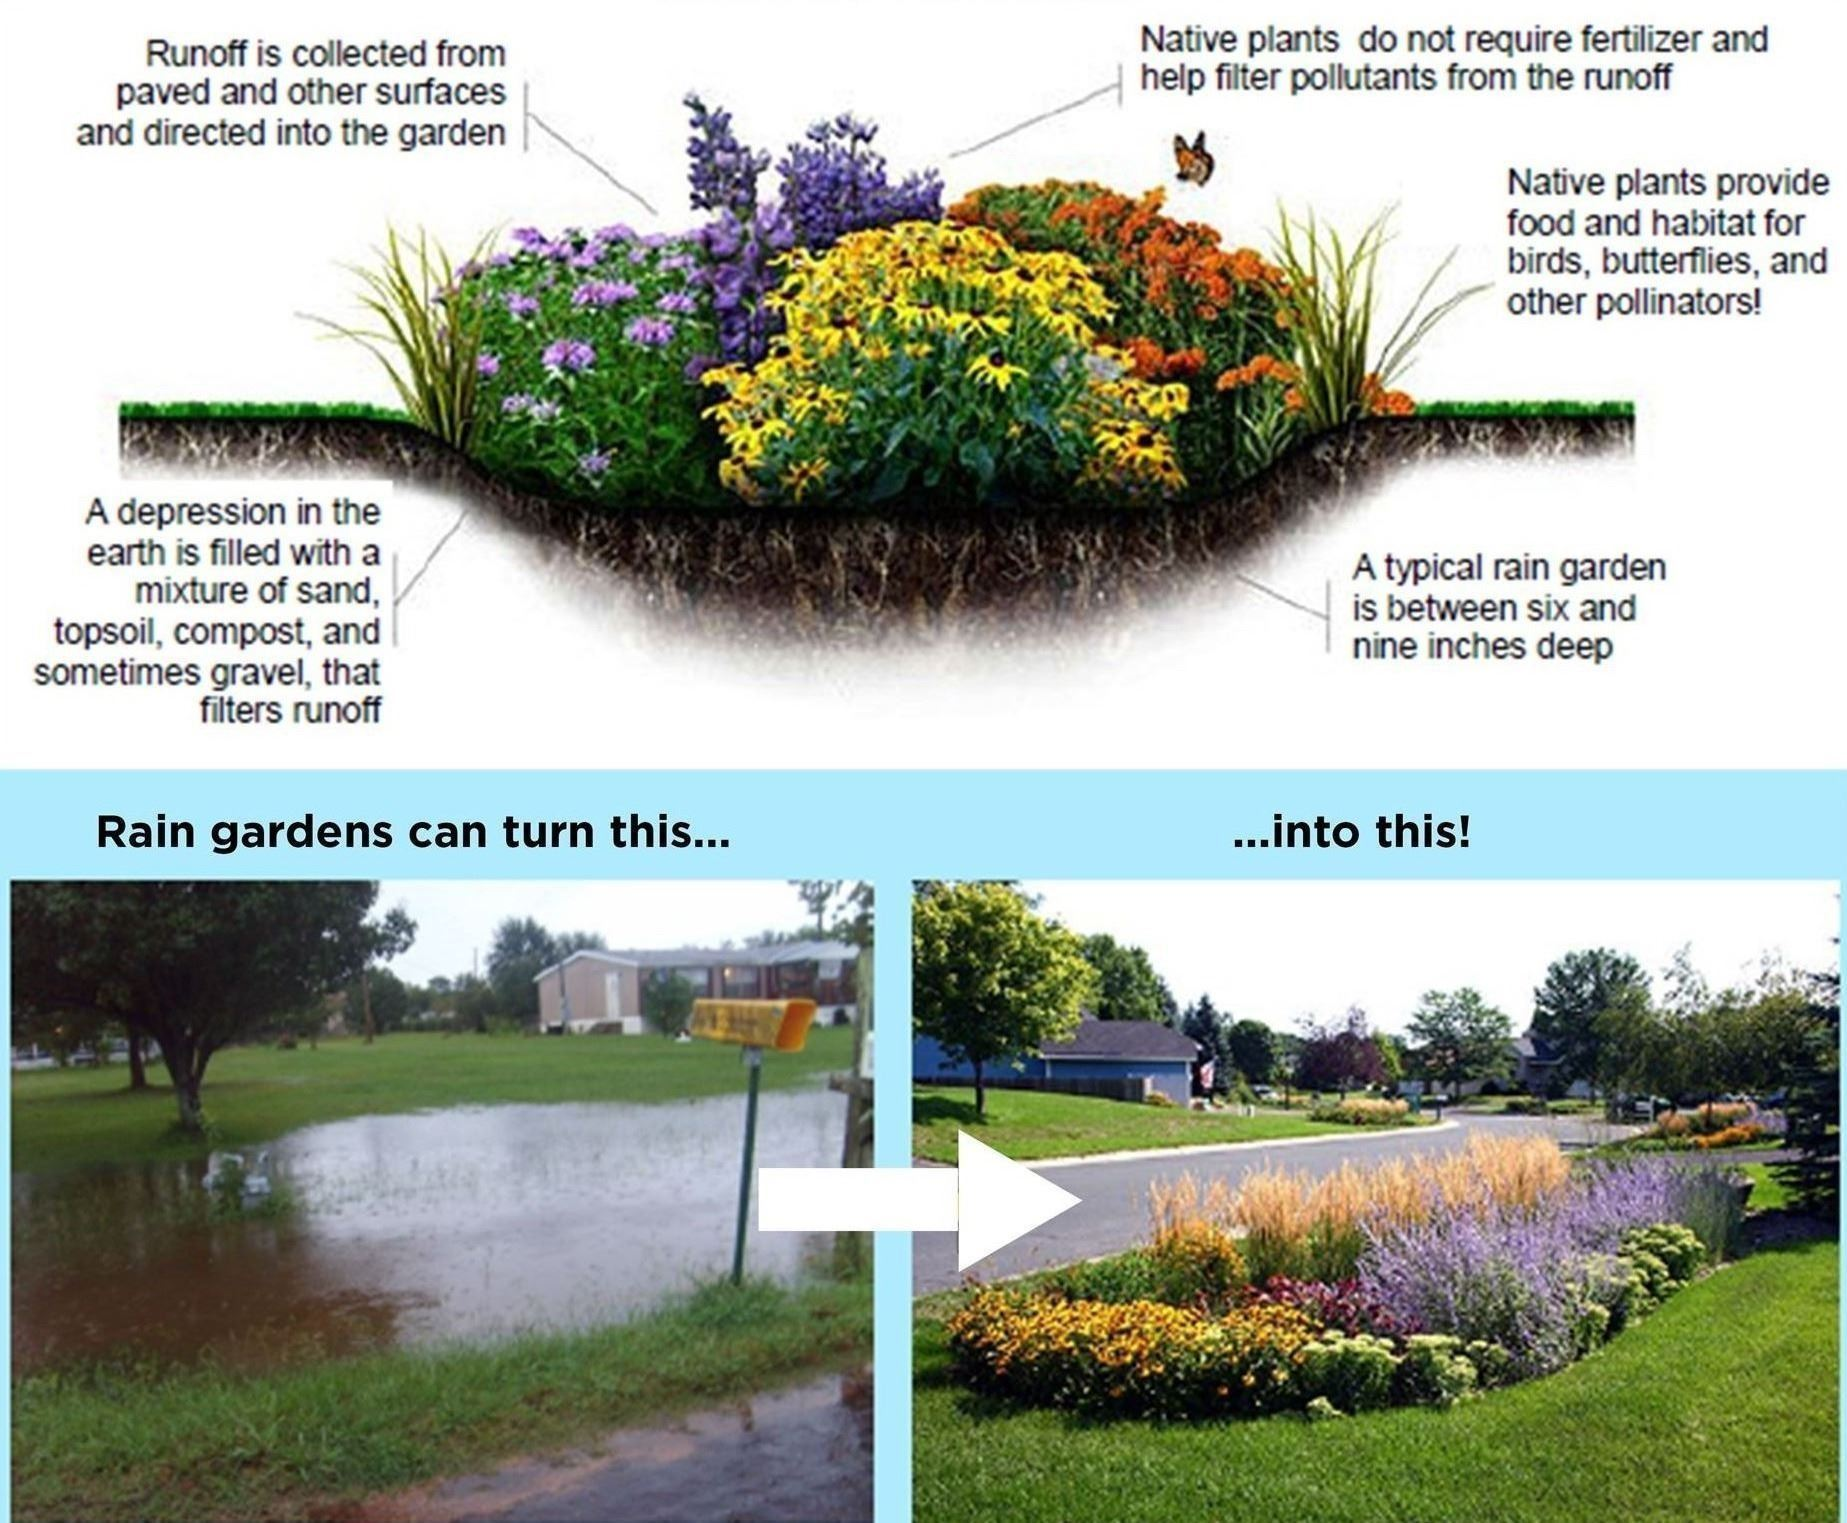 Rain Garden Program | Royal Oak, MI on rain illustration, rain barrels, bioswale design, rain gardens 101, rain art drawings, rain gutter downspout design, rain roses, gasification design, rain harvesting system design, french drain design, dry well design, rain water design, rain construction,